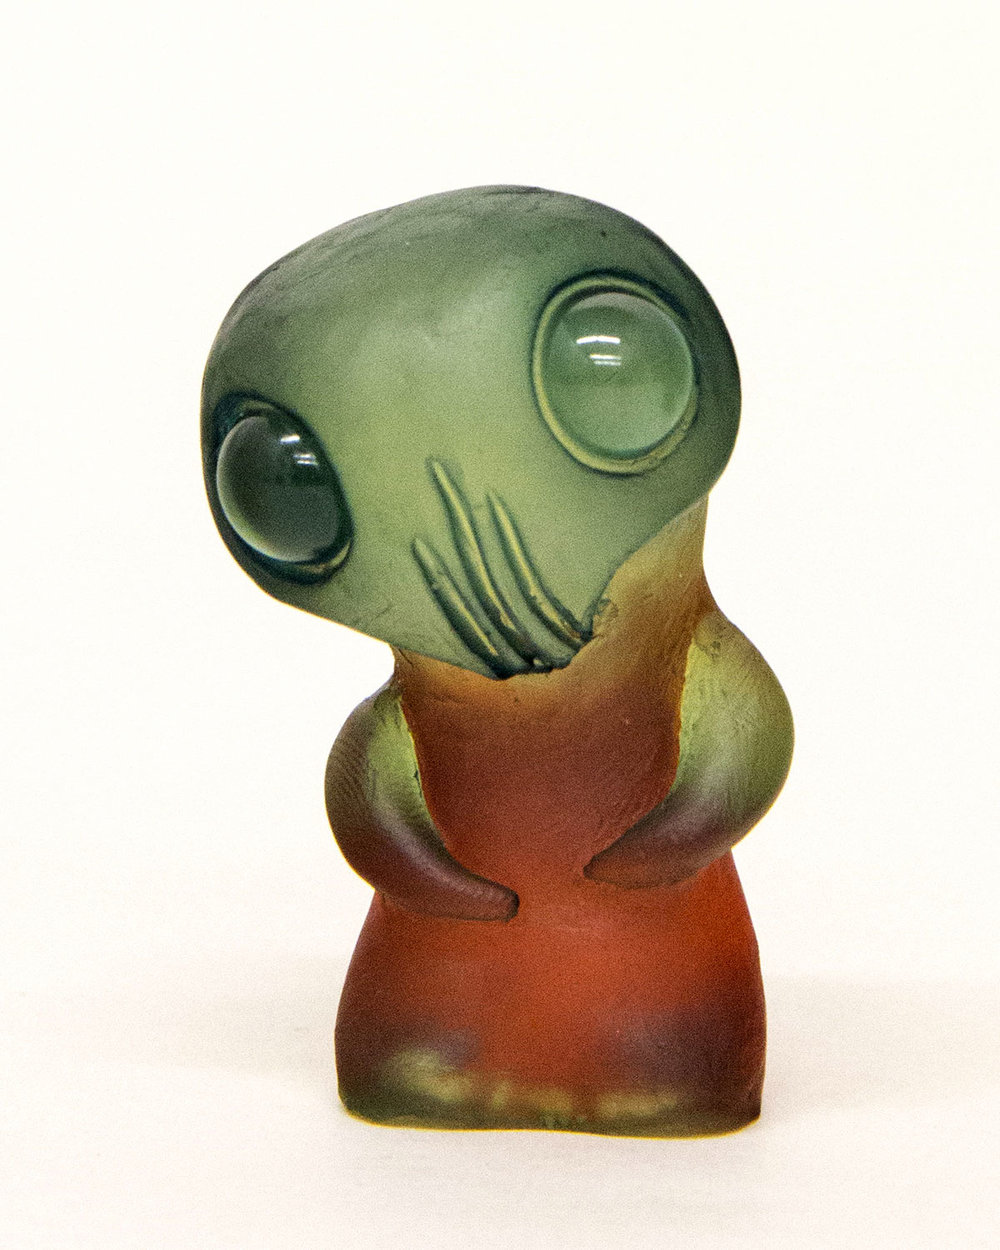 Dyed resin character by Harison Fosle